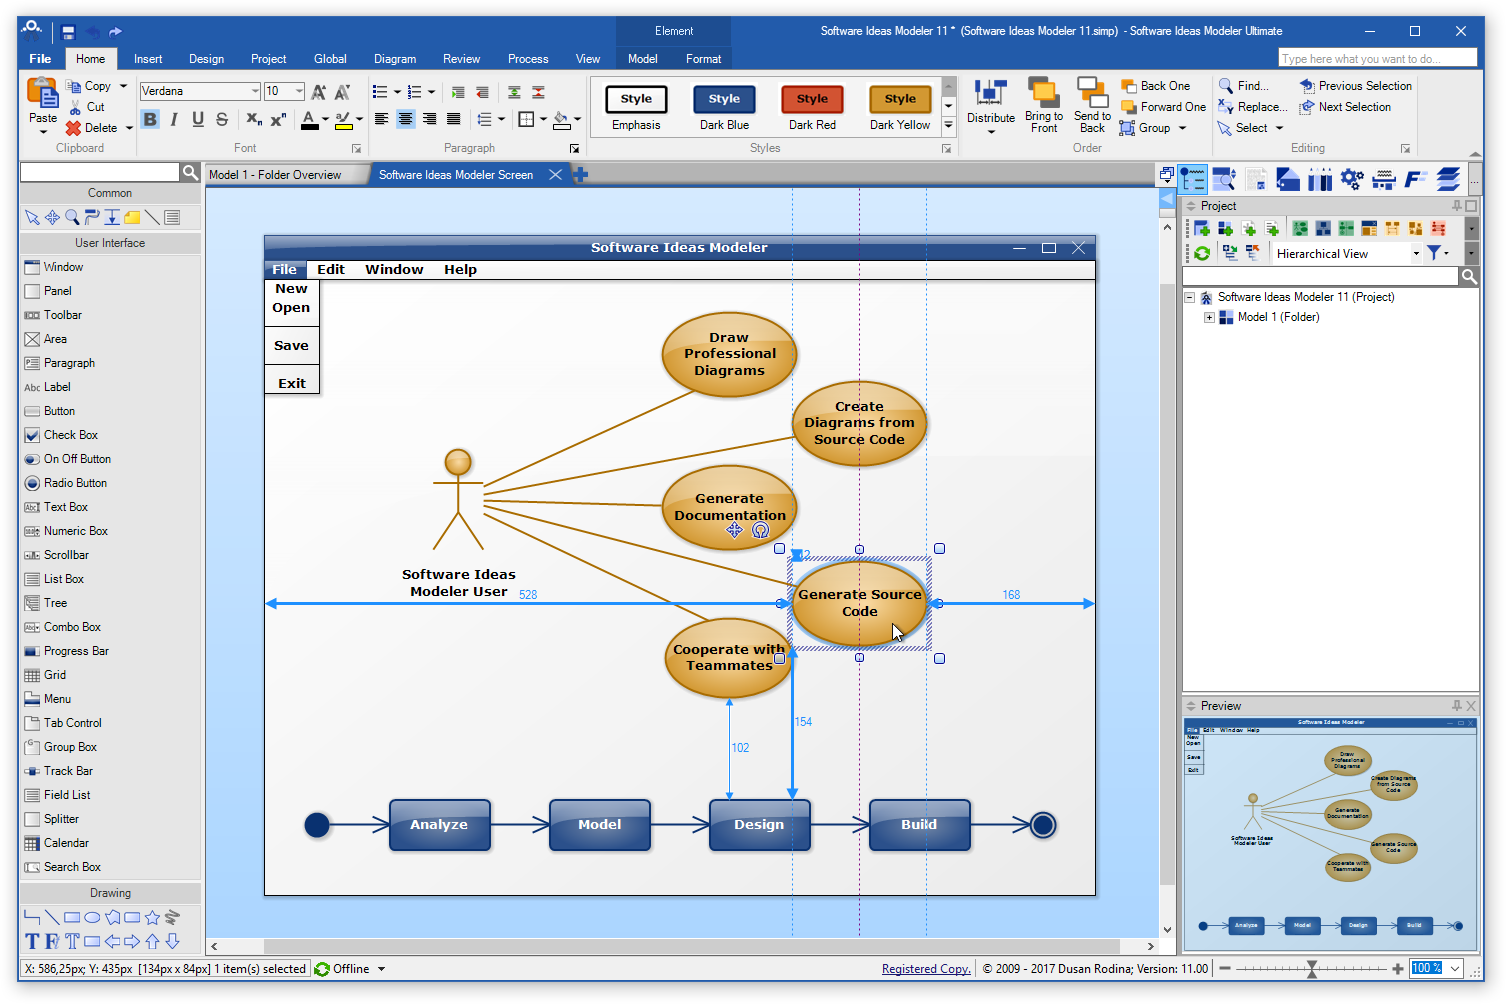 Software ideas modeler 11 new level of software modeling and software ideas modeler 11 pooptronica Image collections